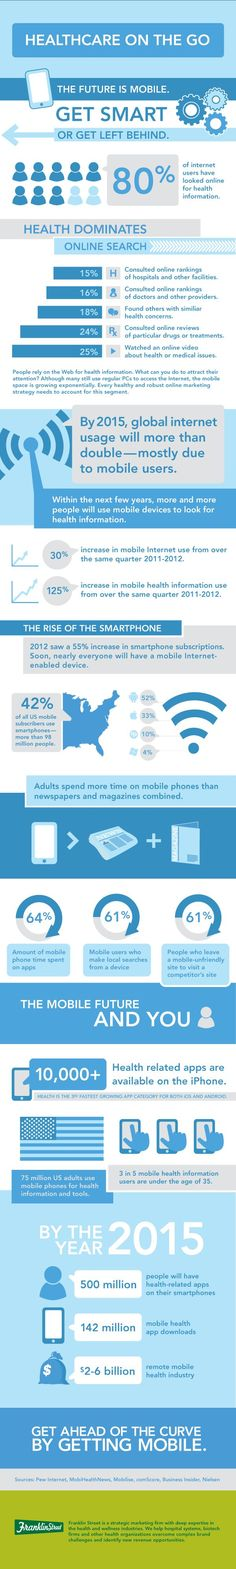 ignore health mobile marketing  If you do, you'll miss out.    By Jessica Levco | Posted:November 15, 2012